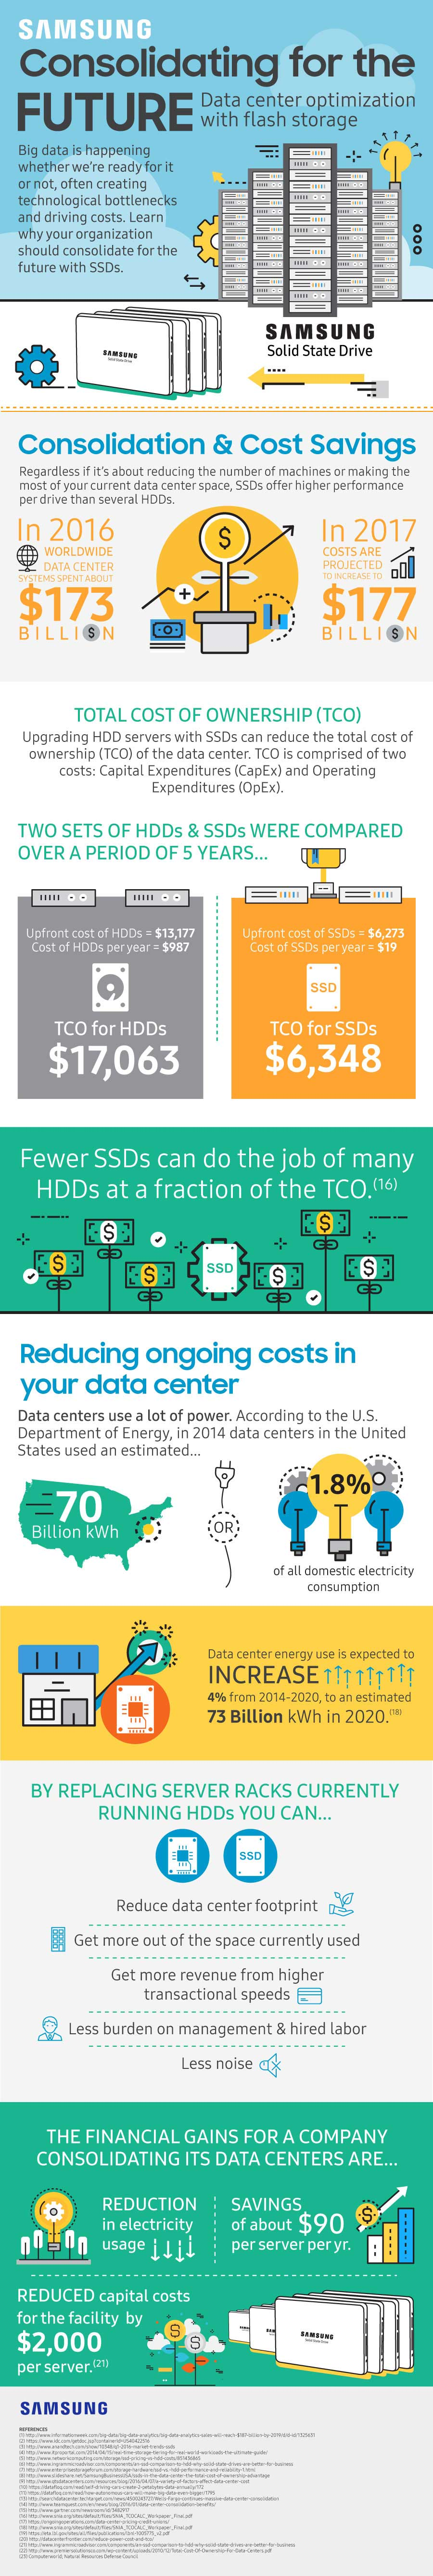 """Consolidating for the Future"" Samsung Infographic designed by Julie Mendez for Pixel Ninja."